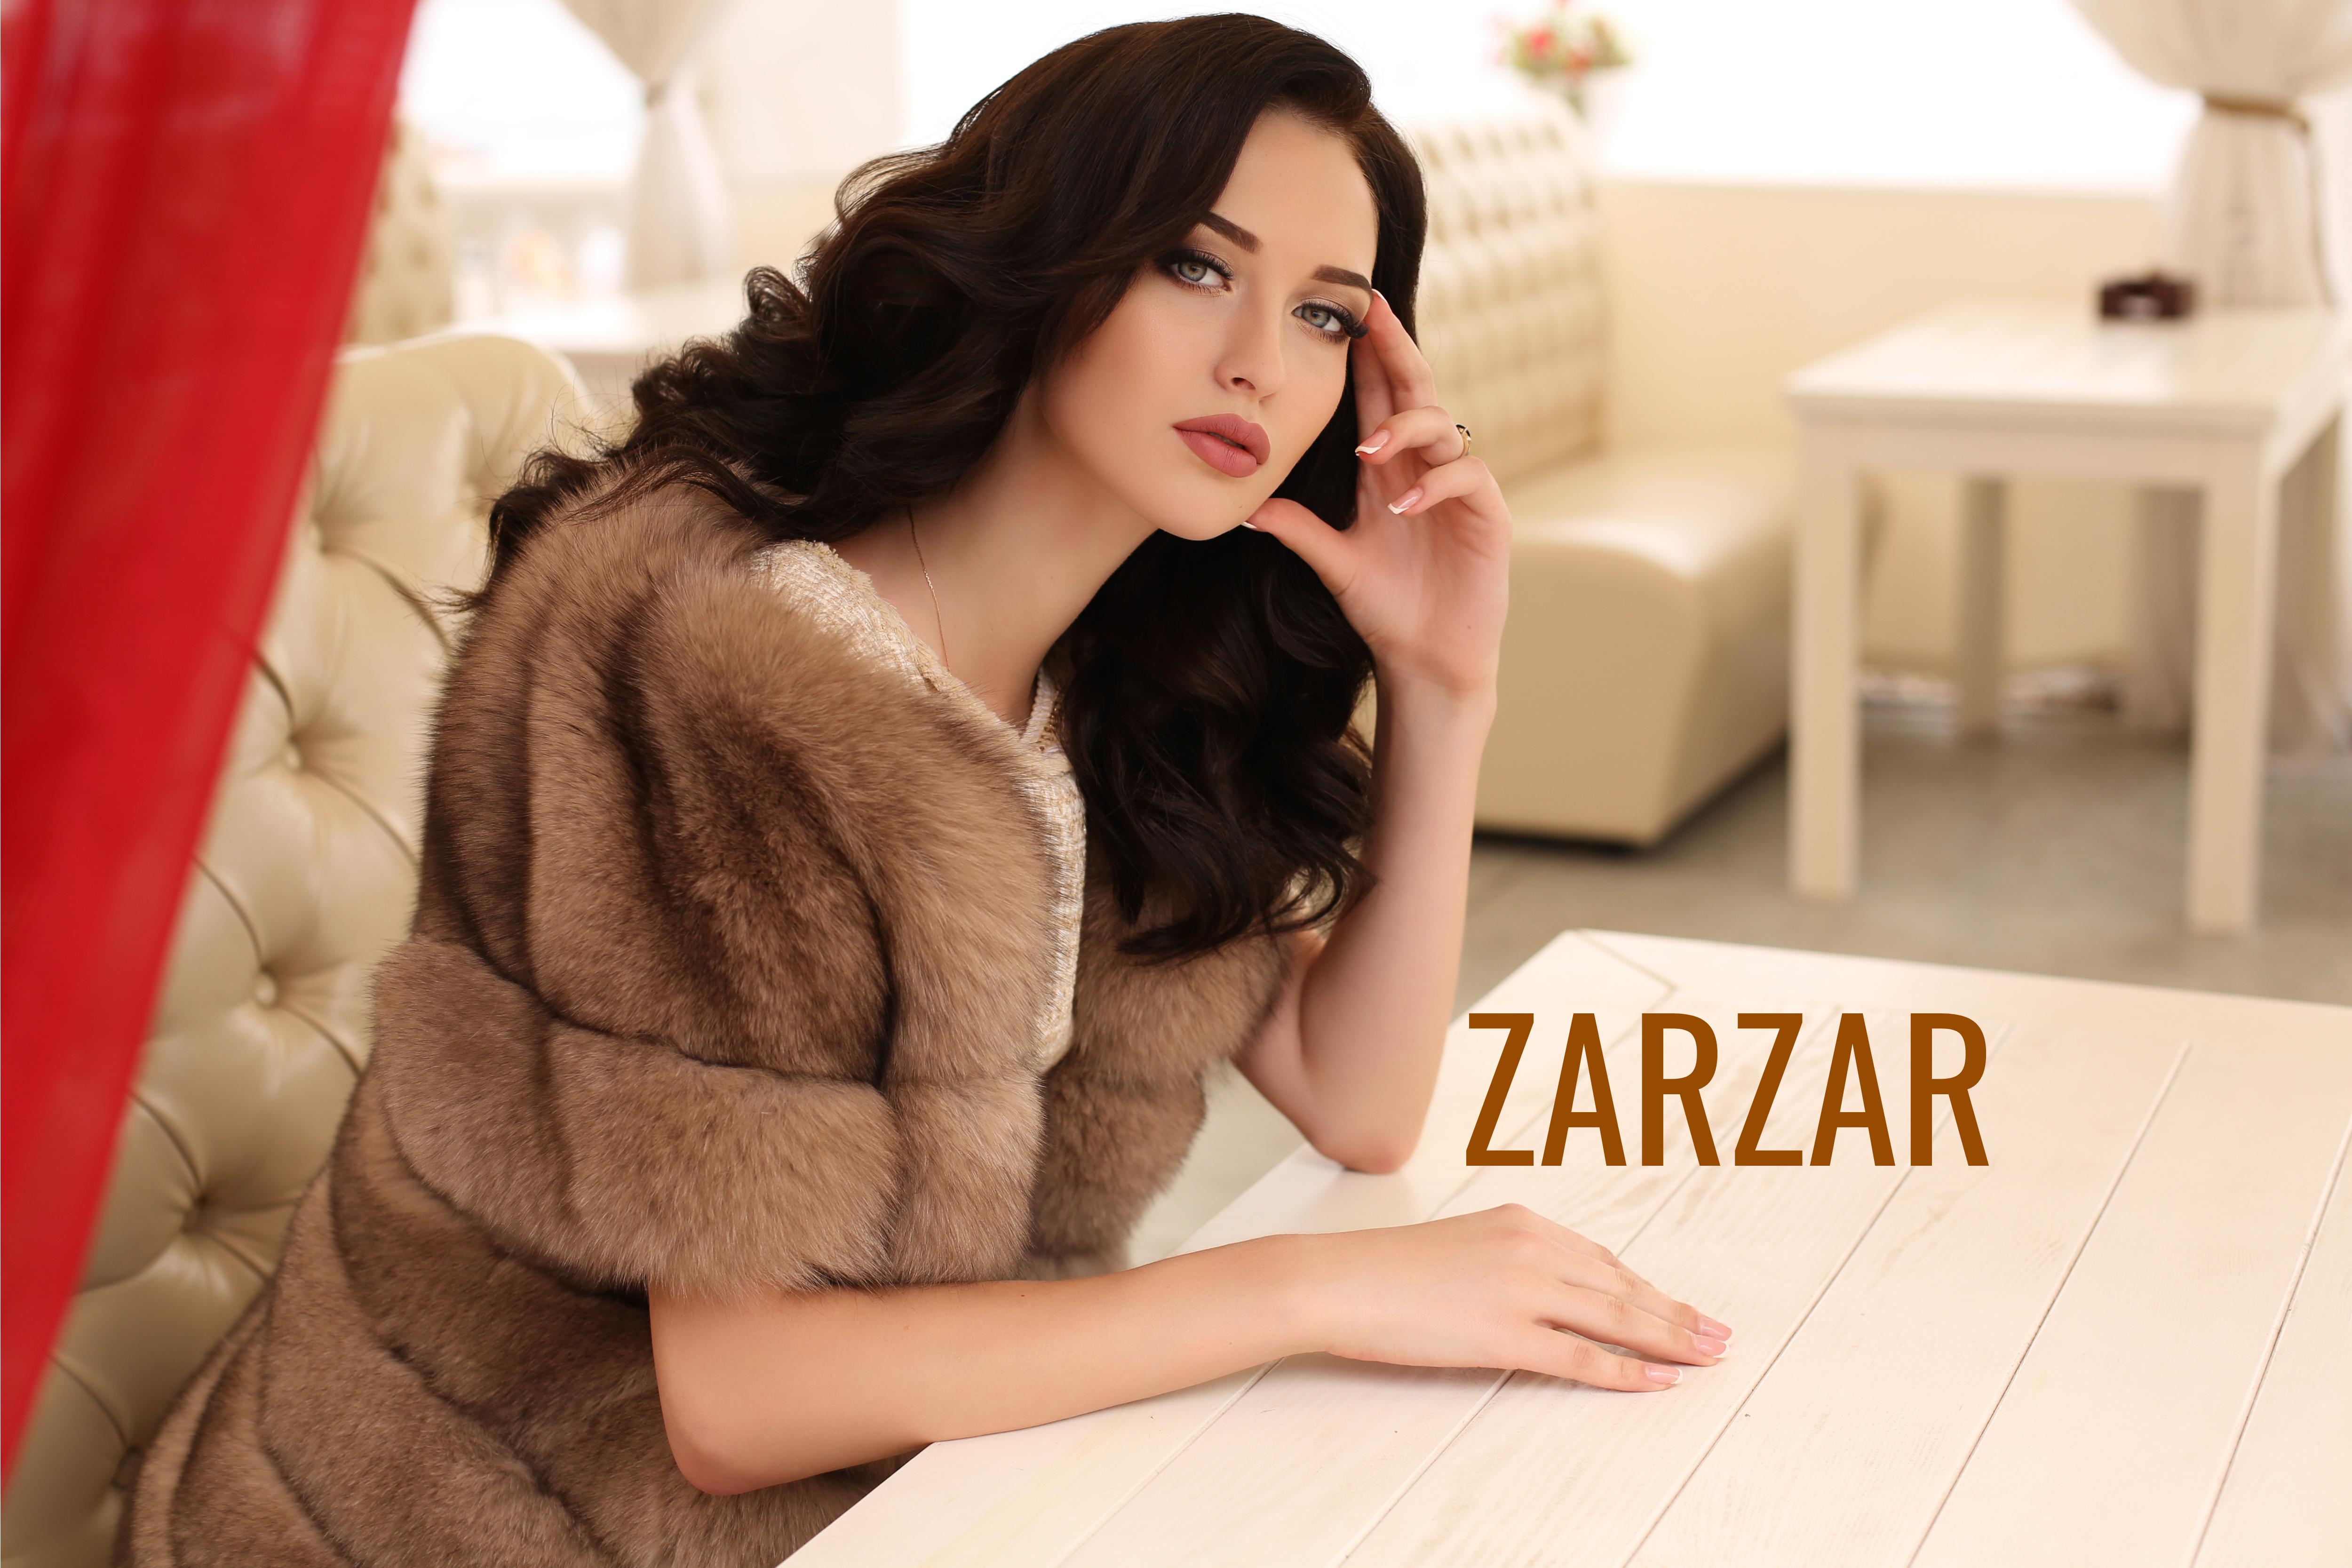 ZARZAR FASHION Sexy Coats For Women (Cute Coats For Girls). Beautiful Fashion Models Modeling In Beautiful Coats For Beautiful Fashion Advertisements (Sexy Fashion Ads).